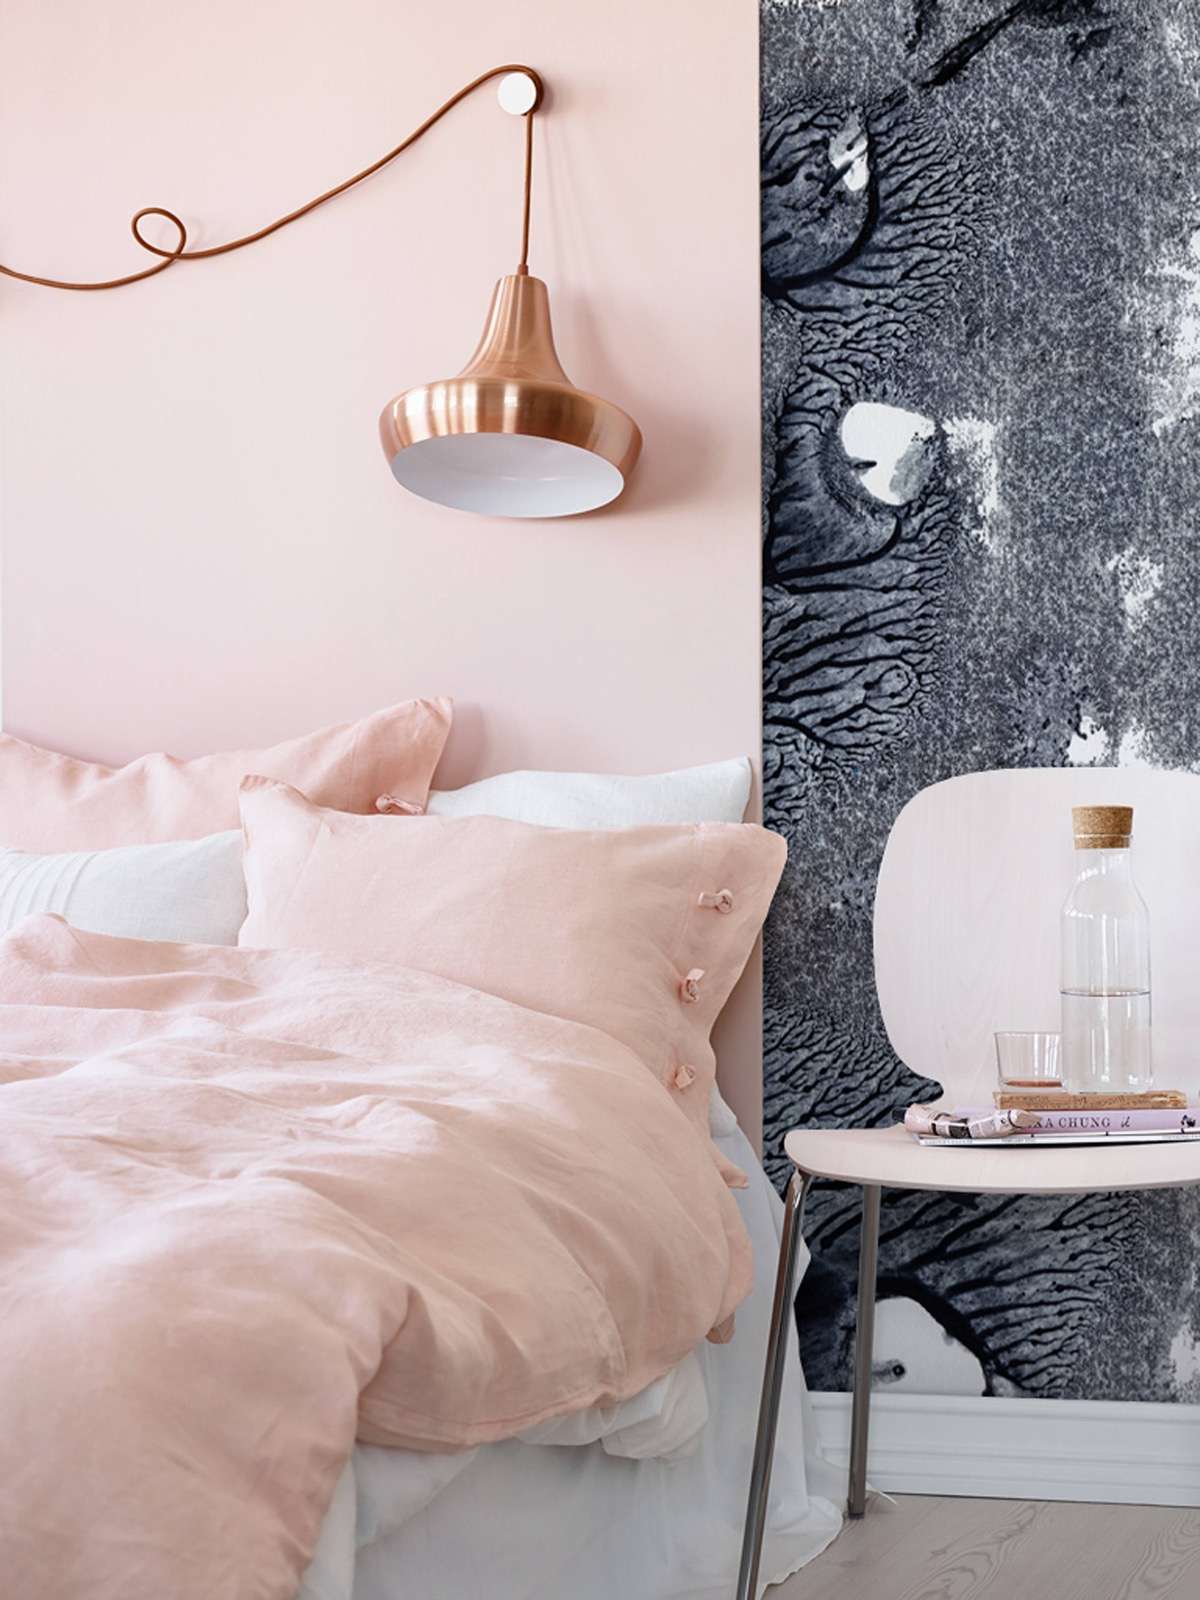 Decorate your bedroom using the millennial pink trend with these easy, modern design ideas from vanessa arbuthnott. 101 Pink Bedrooms With Images Tips And Accessories To Help You Decorate Yours